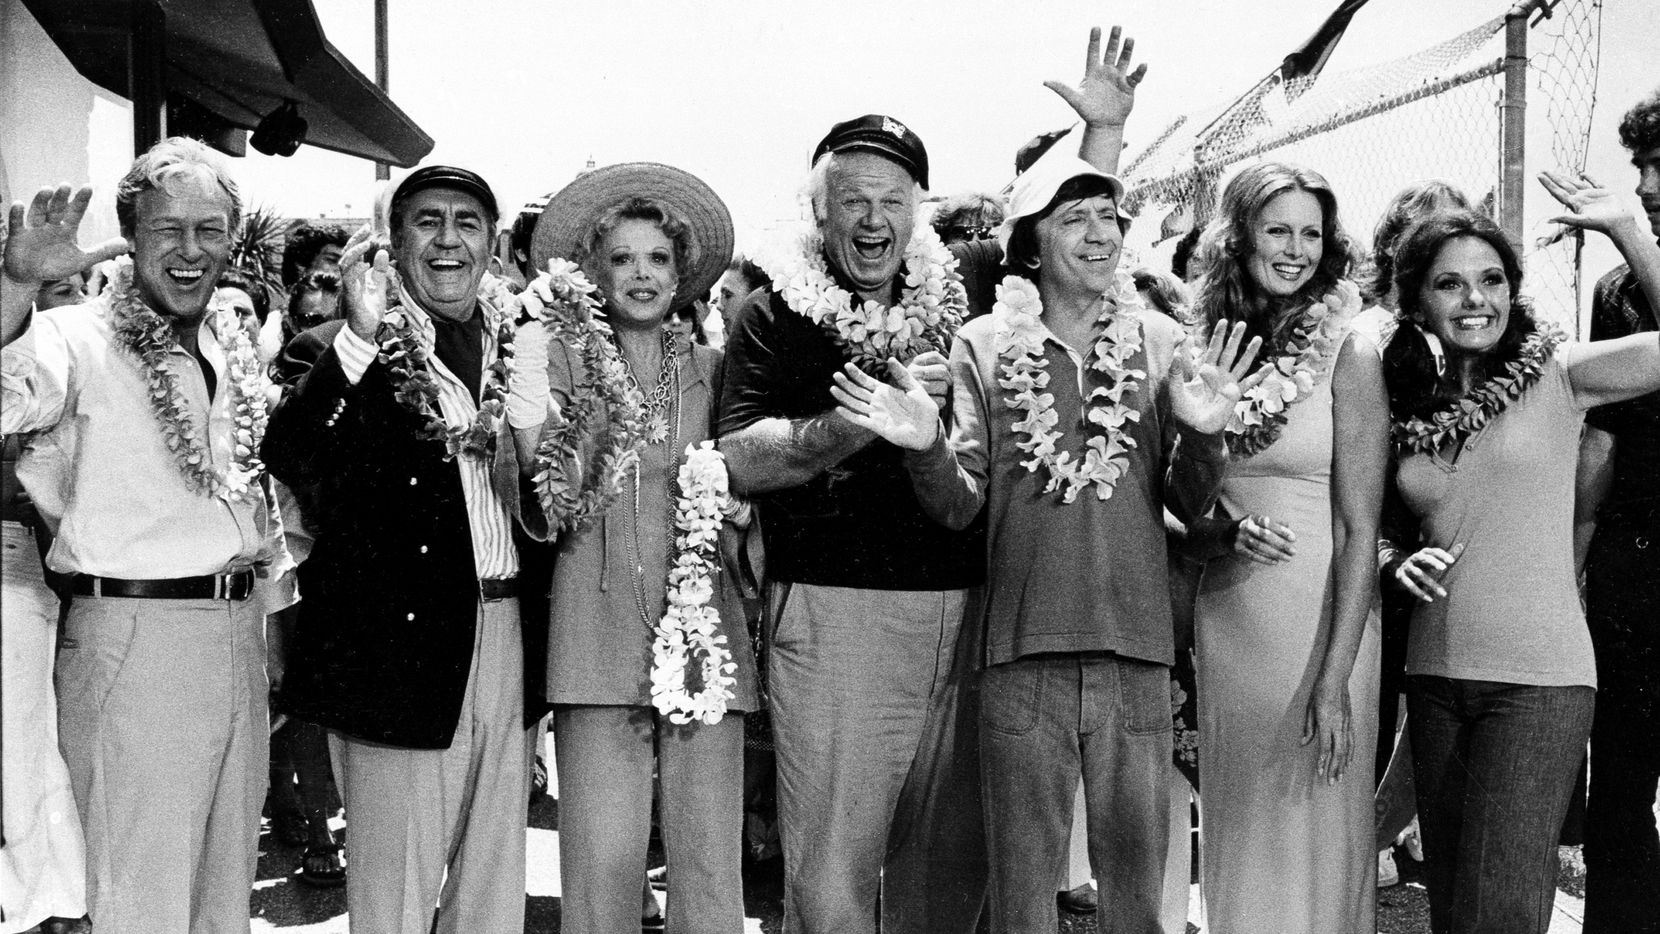 """This Oct. 2, 1978, file photo shows the cast of """"Gilligan's Island."""" Left to right: Russell Johnson, as the professor; Jim Backus as Thurston Howell III; Natalie Schafer, as Mrs. Howell III; Alan Hale Jr., as the skipper; Bob Denver, as Gilligan; Judith Baldwin replacing original cast member Tina Louise, as Ginger; and Dawn Wells, as Mary Ann, posing during filming of a two-hour reunion show, """"The Return from Gilligan's Island."""""""